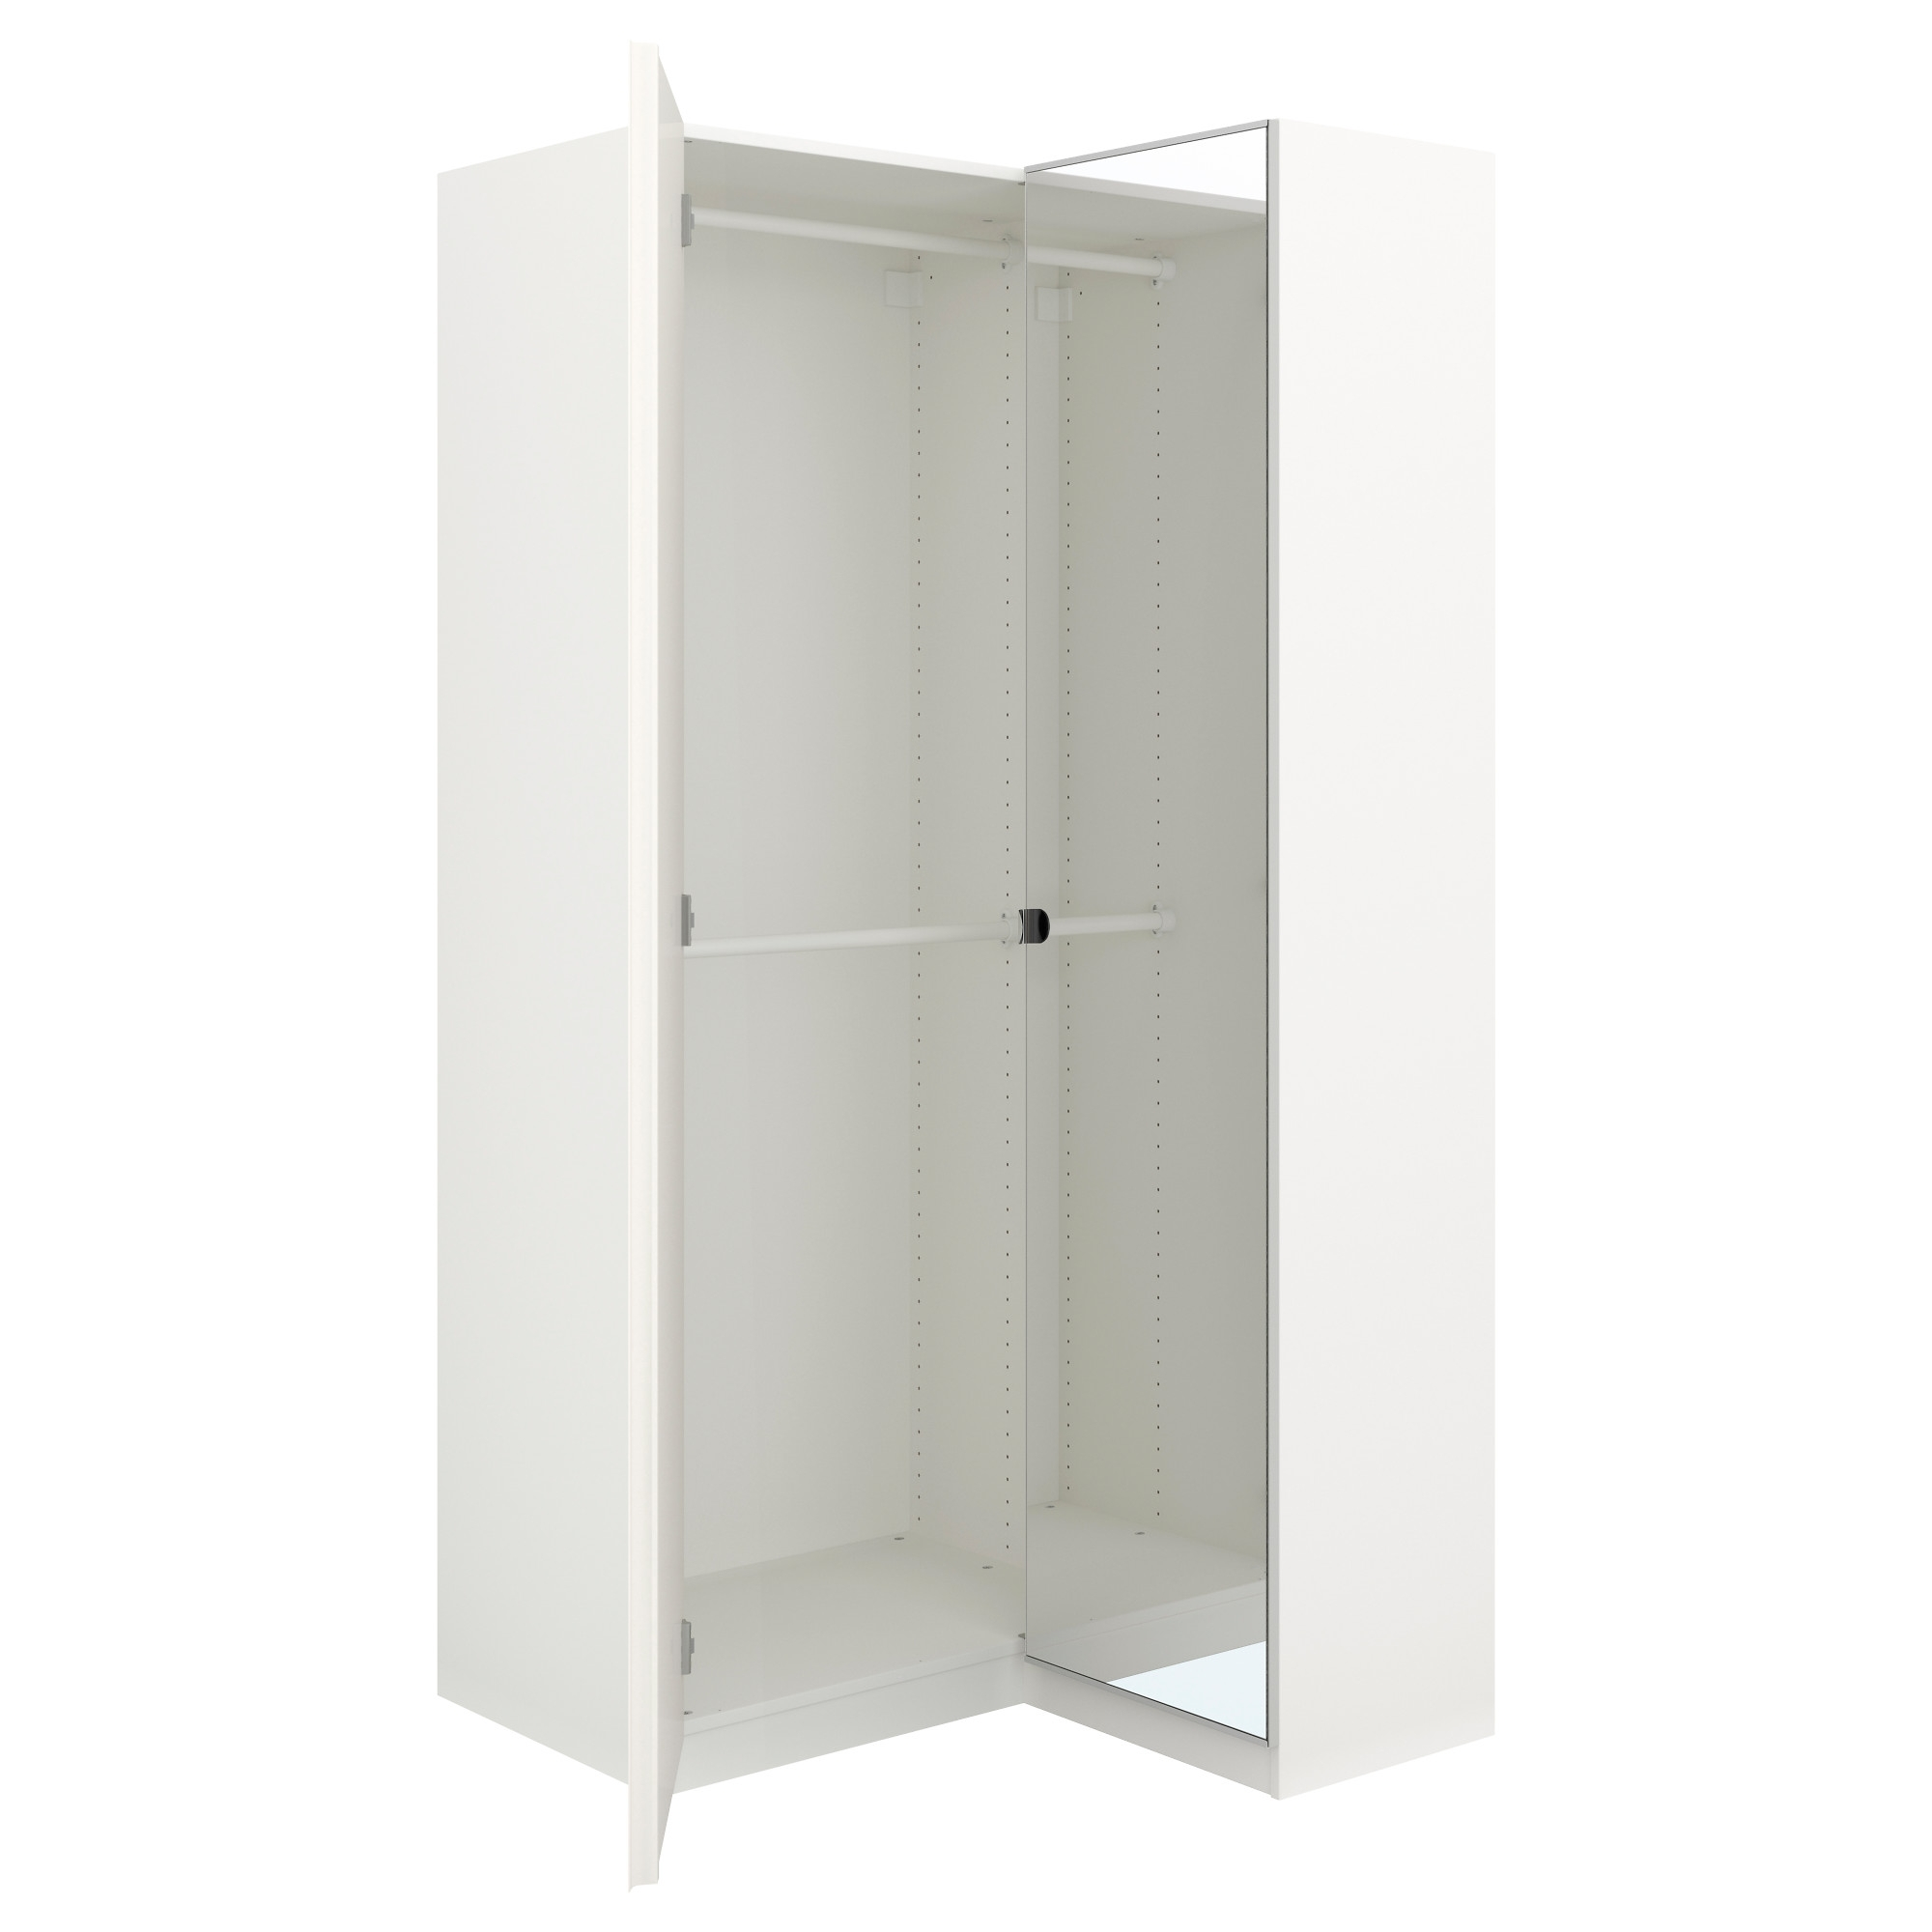 "Widely Used Pax Corner Wardrobe – 43 1/2/34 5/8x93 1/8 "" – Ikea Throughout White Corner Wardrobes (View 2 of 15)"